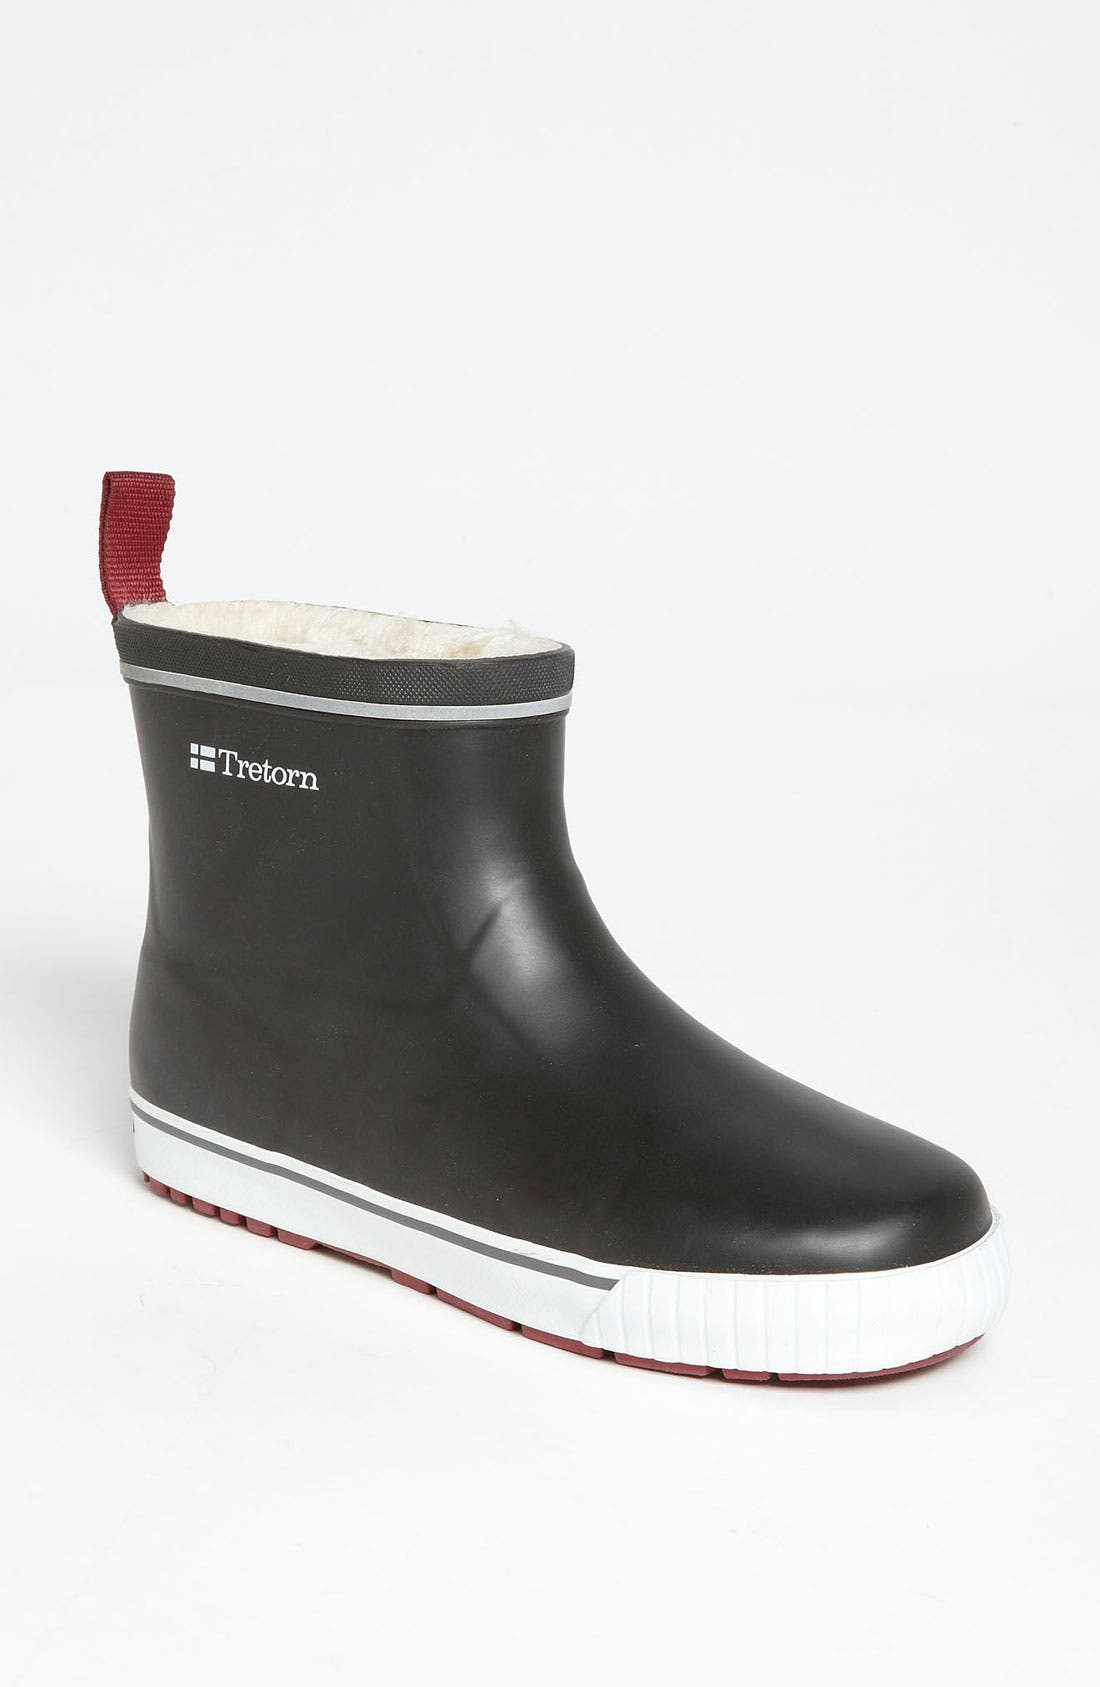 Alternate Image 1 Selected - Tretorn 'Skerry Spritz Vinter' Rain Boot (Women)